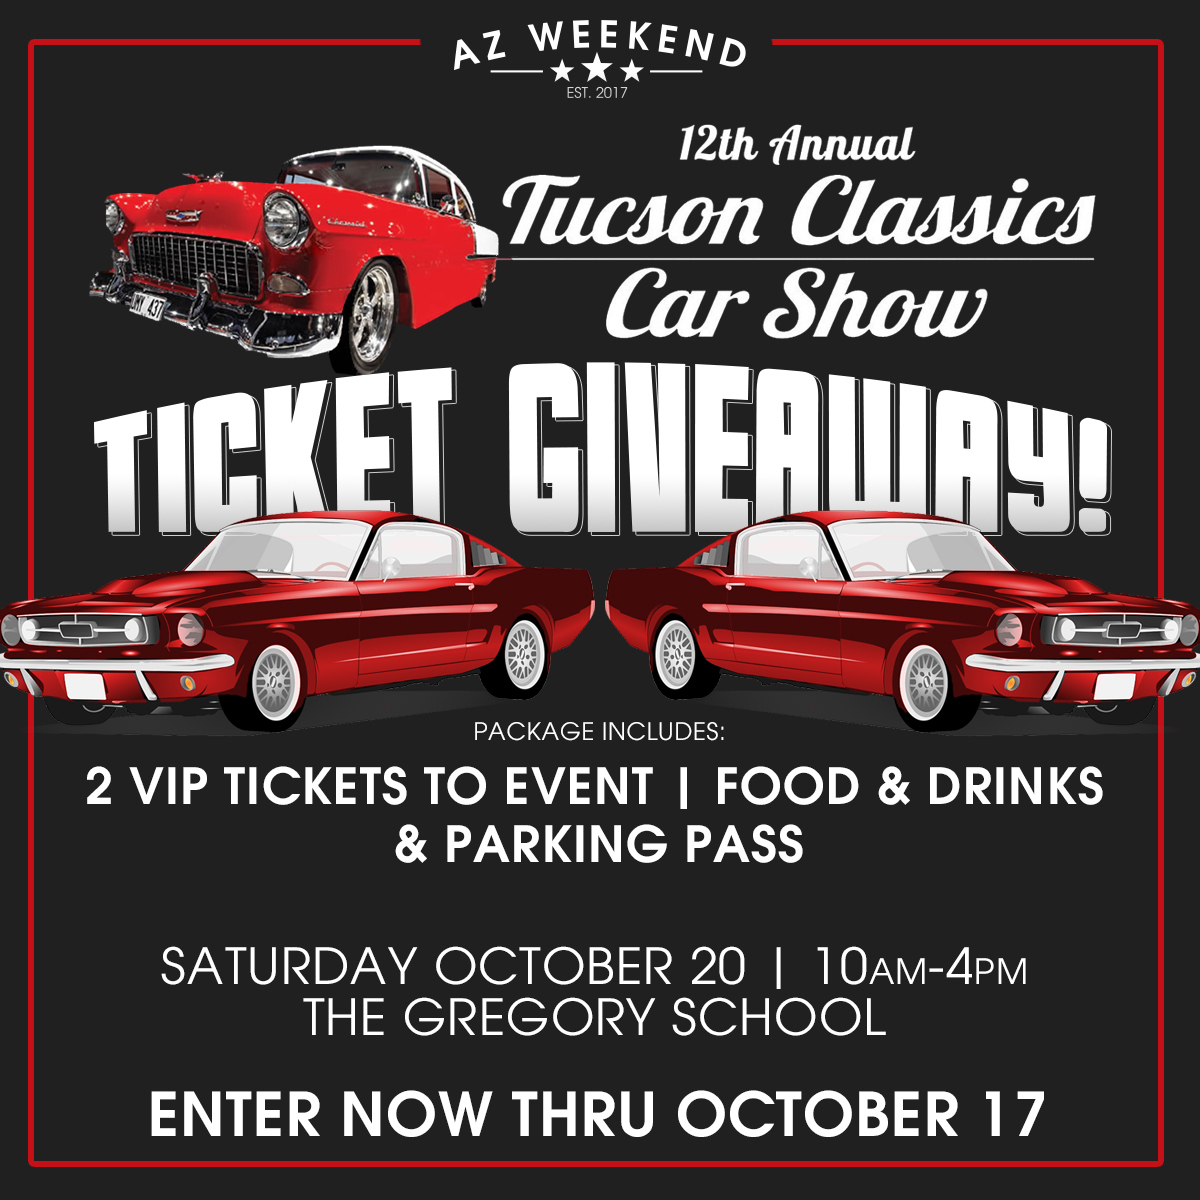 Tucson Classics Car Show VIP Ticket Giveaway AZ Weekend - How much are the tickets for the car show